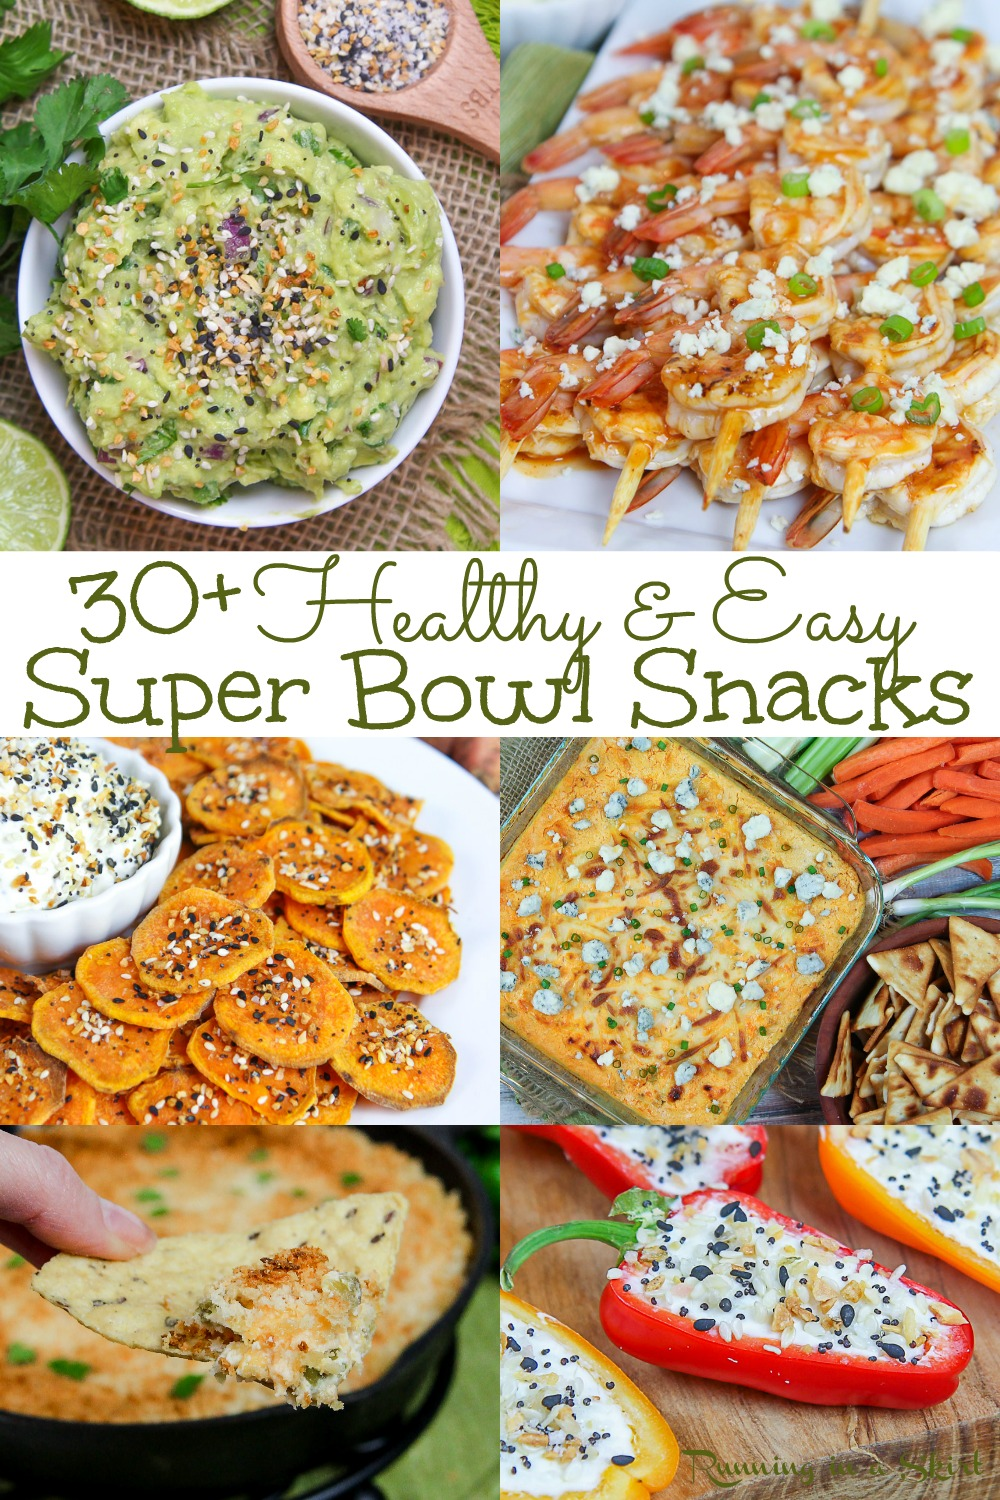 Healthy Super Bowl Snacks - Clean Eating, Vegan and Vegetarian options. These are game day recipes and party appetizer ideas you can actually feel good eating. The list is made up of clean eating vegetarian recipes with vegan - dairy free options. From appetizer, dips, sauces, treats and sweet options- this list has all the easy appetizers your need for your football party! / Running in a Skirt #superbowl #cleaneating #vegetarian #vegan #vegetariansuperbowl #healthysuperbowl via @juliewunder